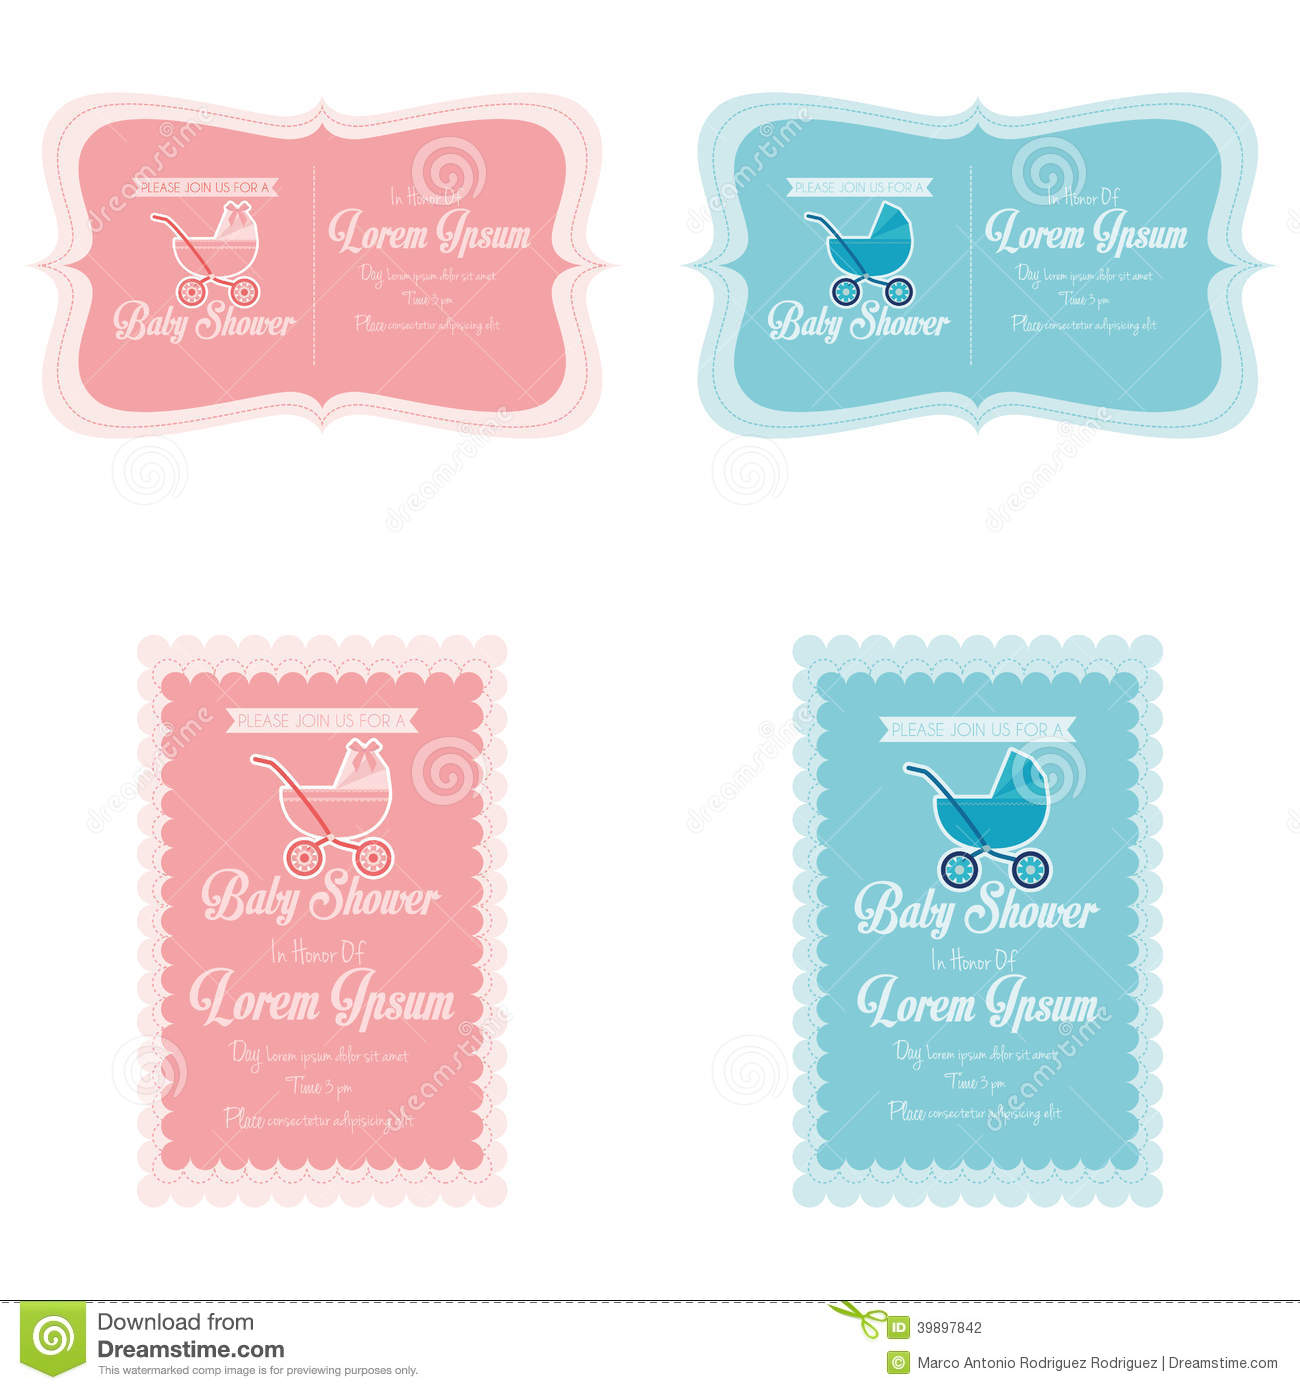 baby shower place cards template - baby shower template cards illustration editable stock